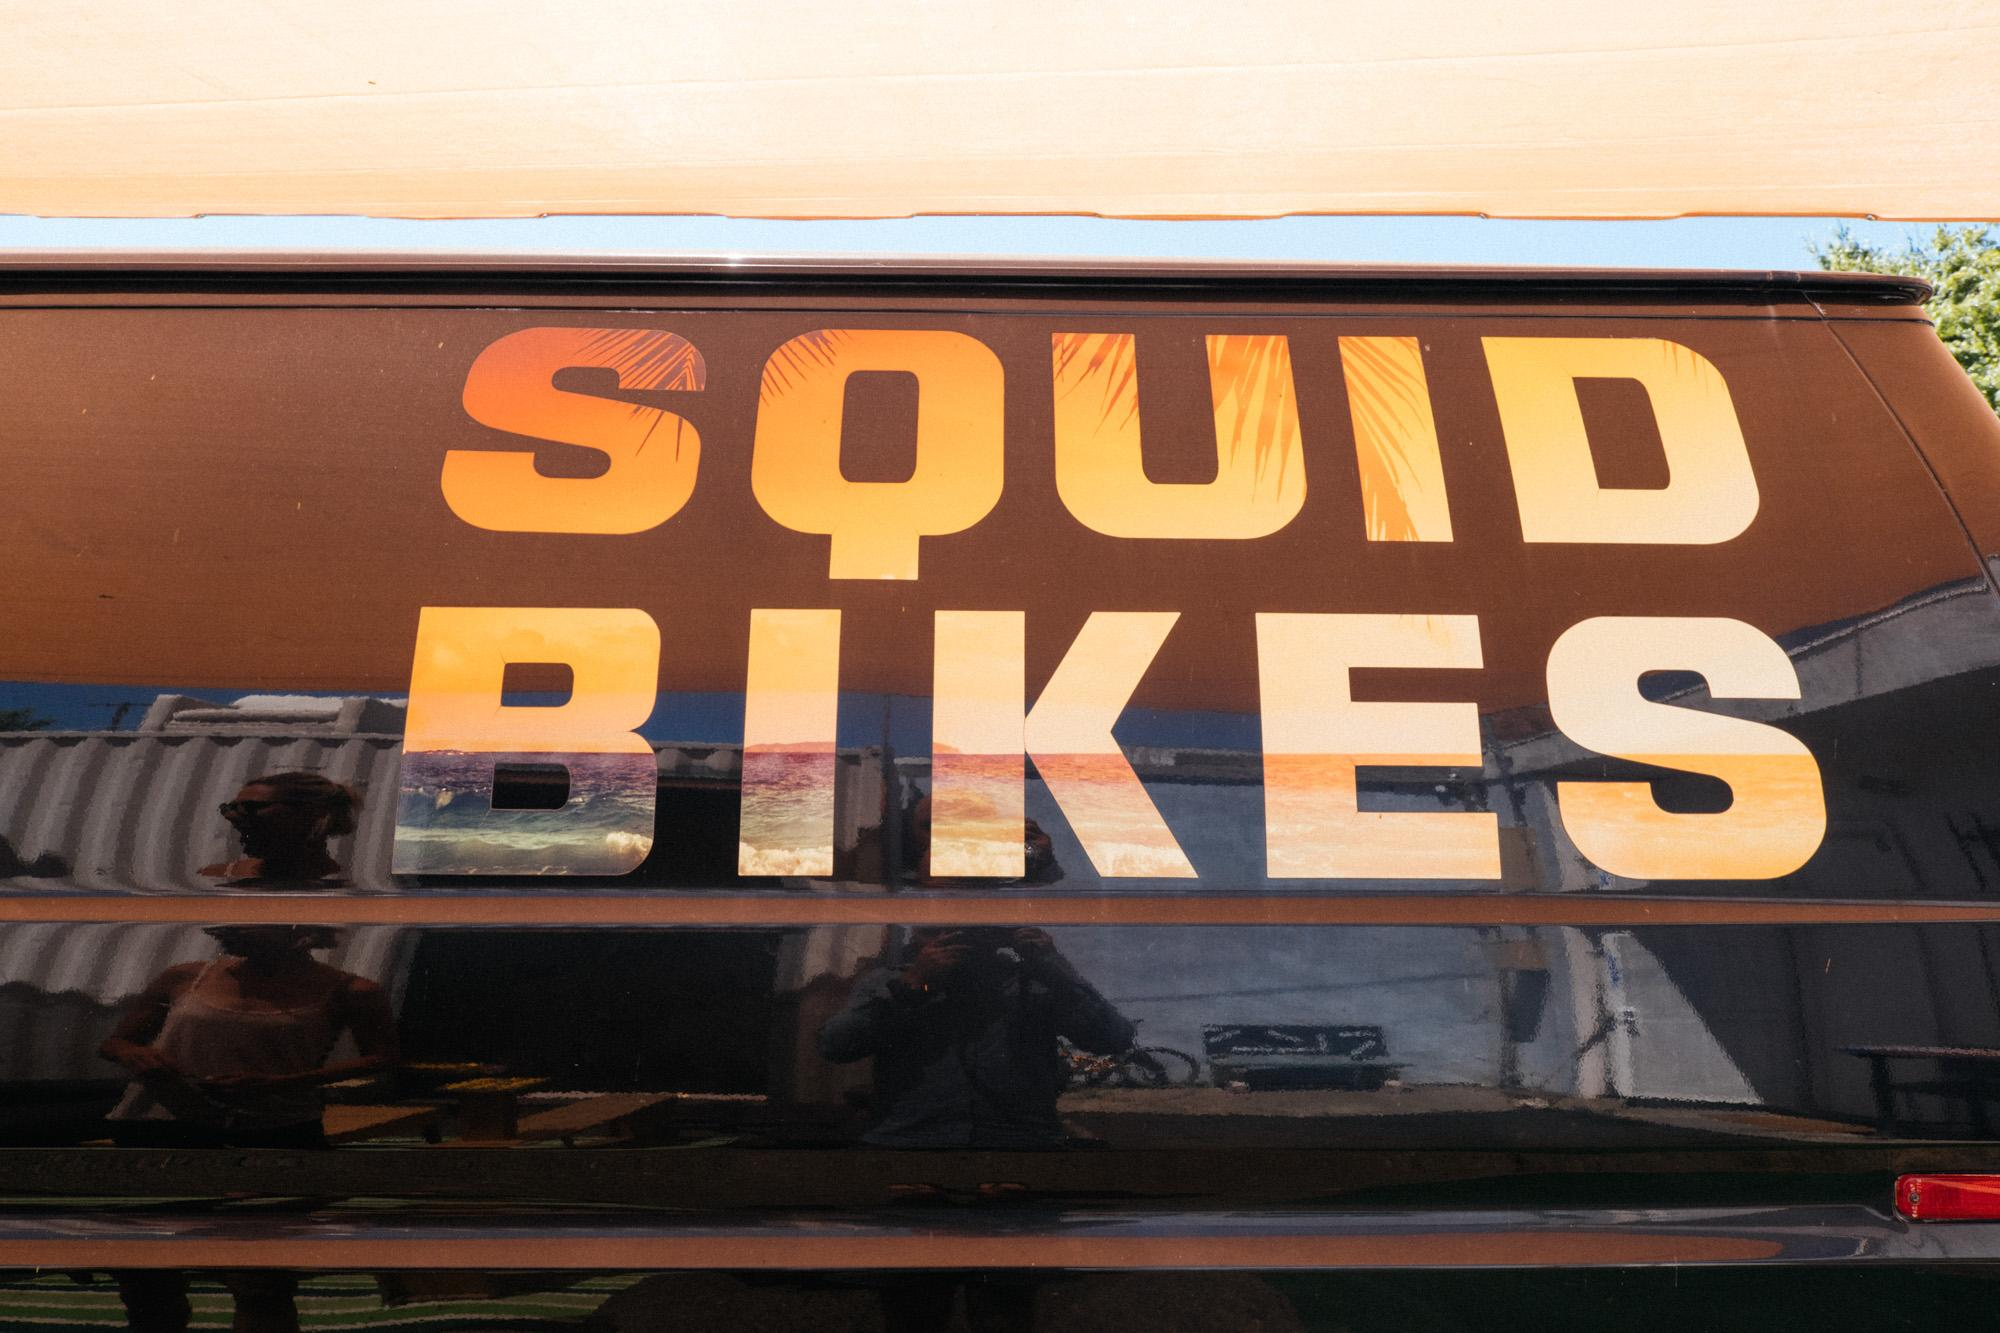 Squid Bikes: Taking Over the World One Rattlecan at a Time!